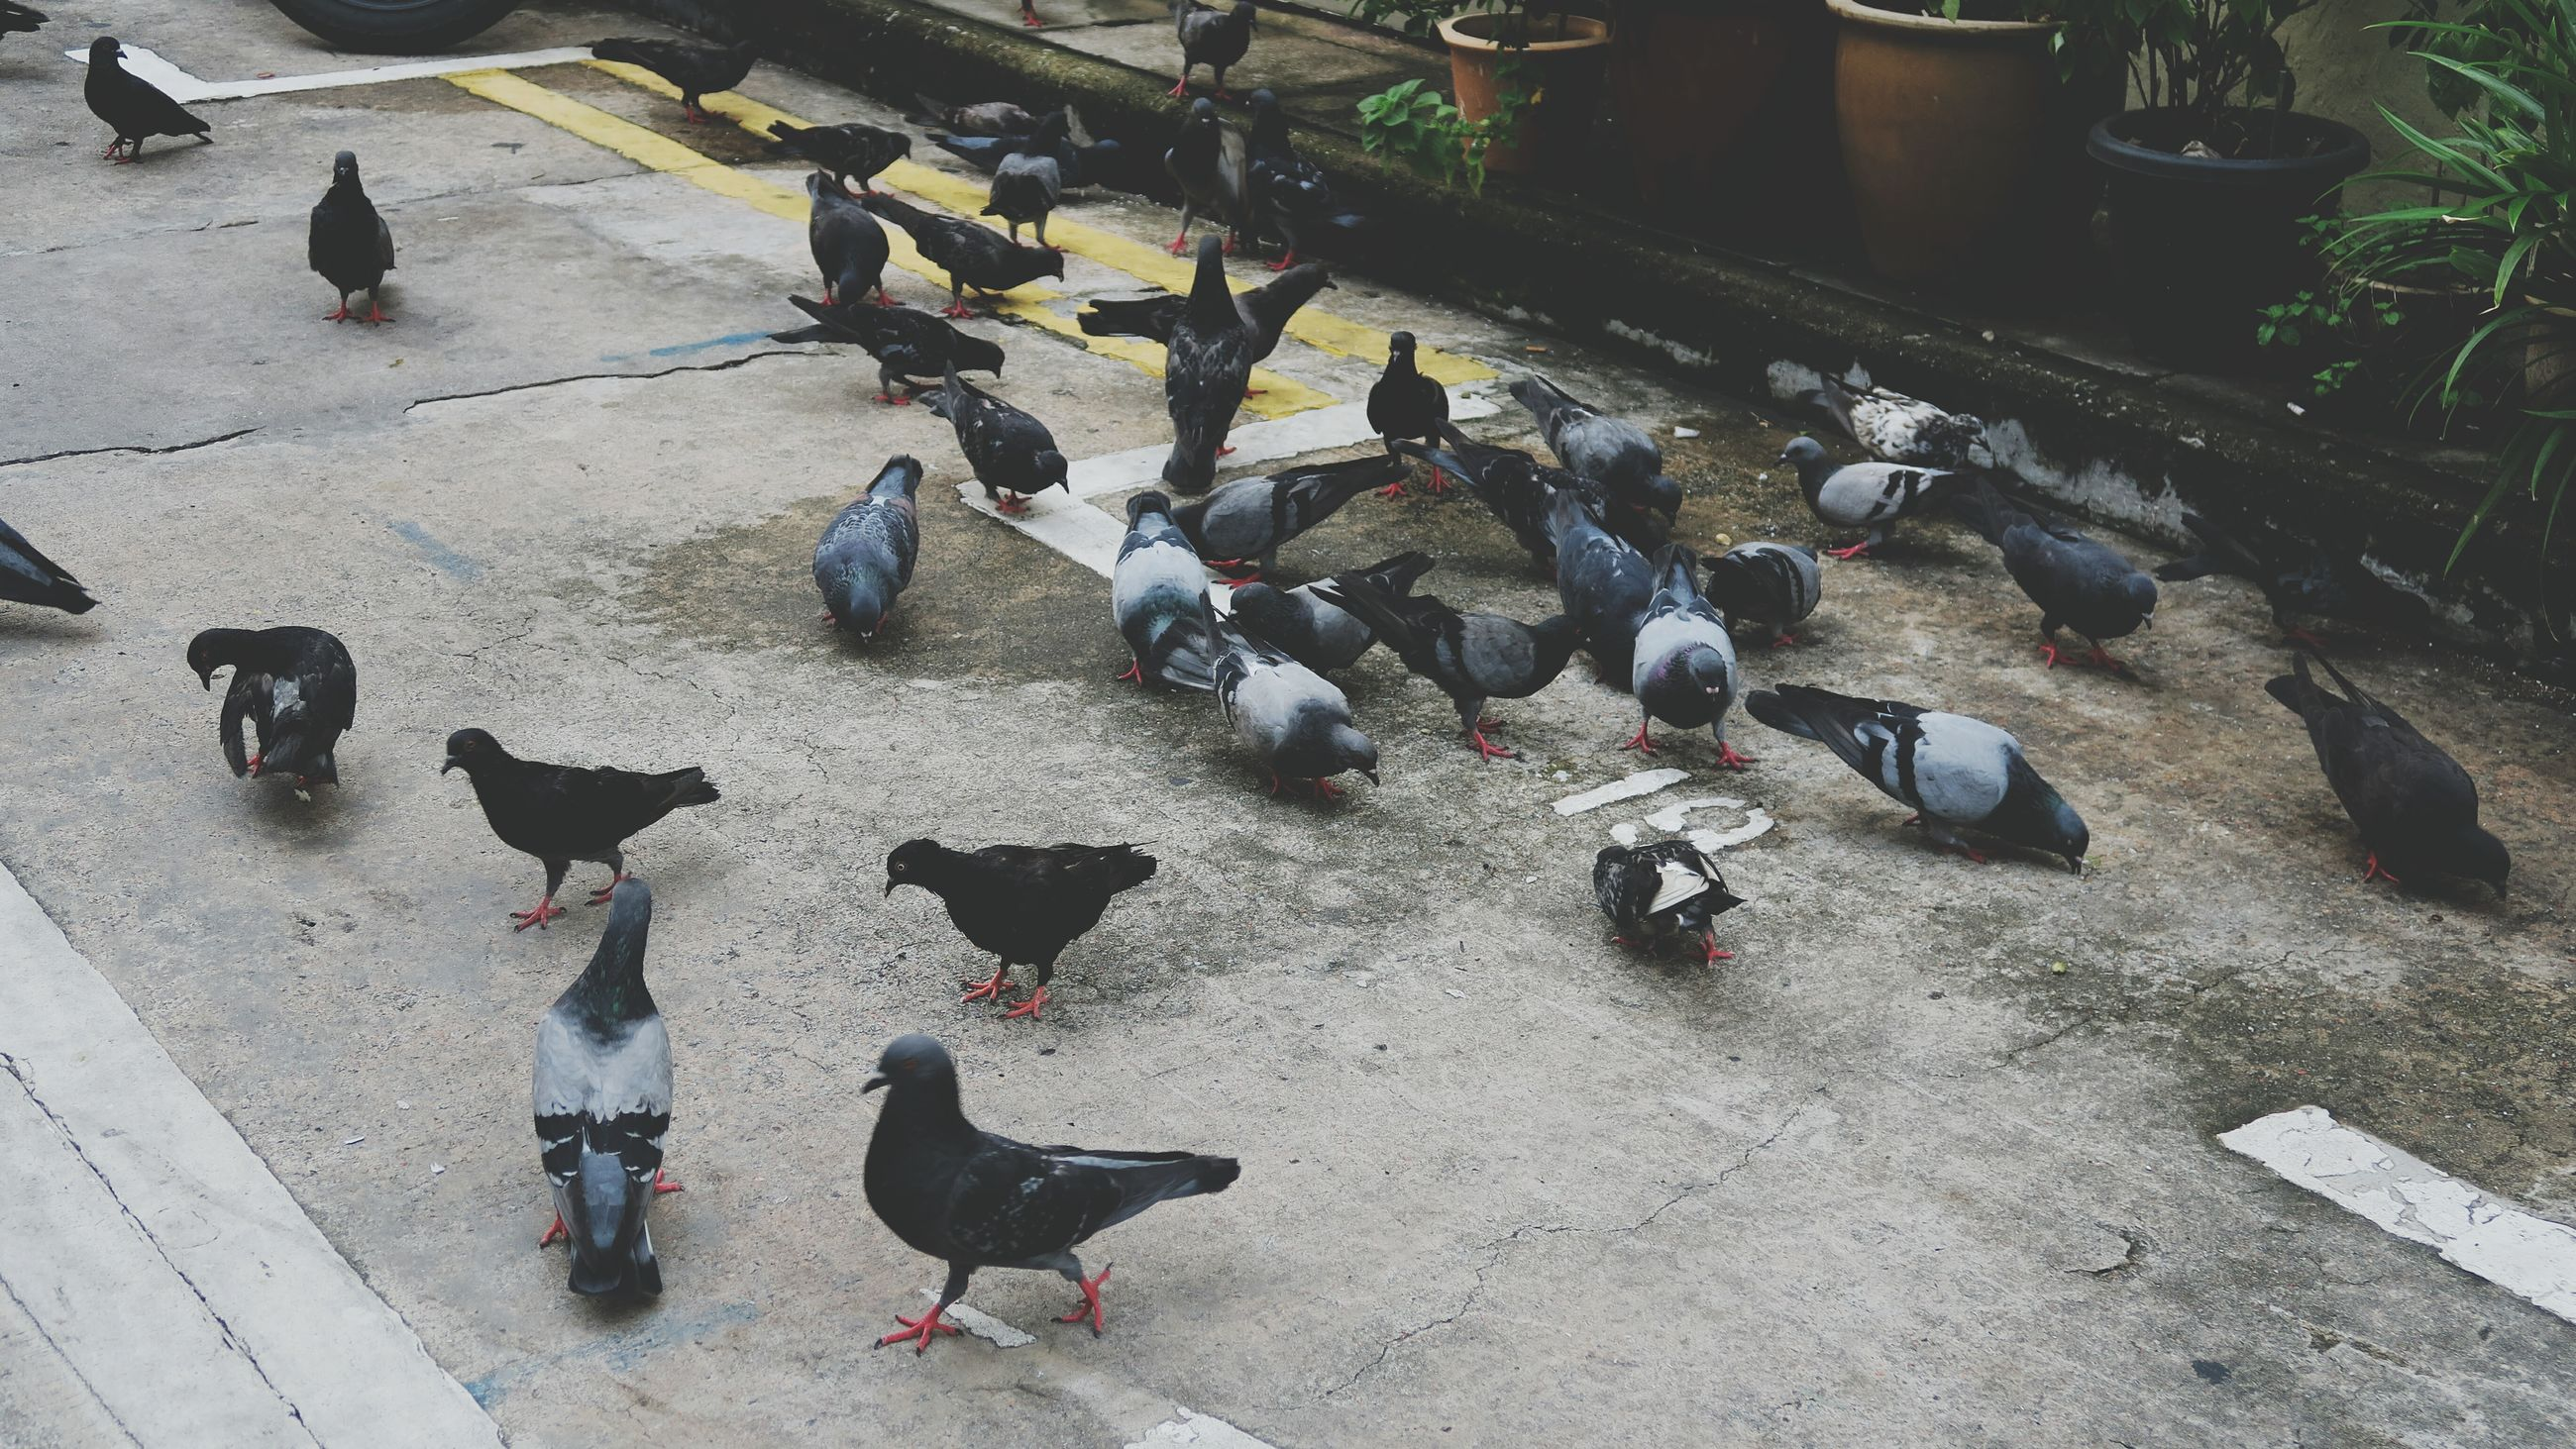 bird, animal themes, pigeon, animals in the wild, wildlife, high angle view, flock of birds, street, day, medium group of animals, outdoors, sunlight, walking, full length, shadow, domestic animals, togetherness, perching, cobblestone